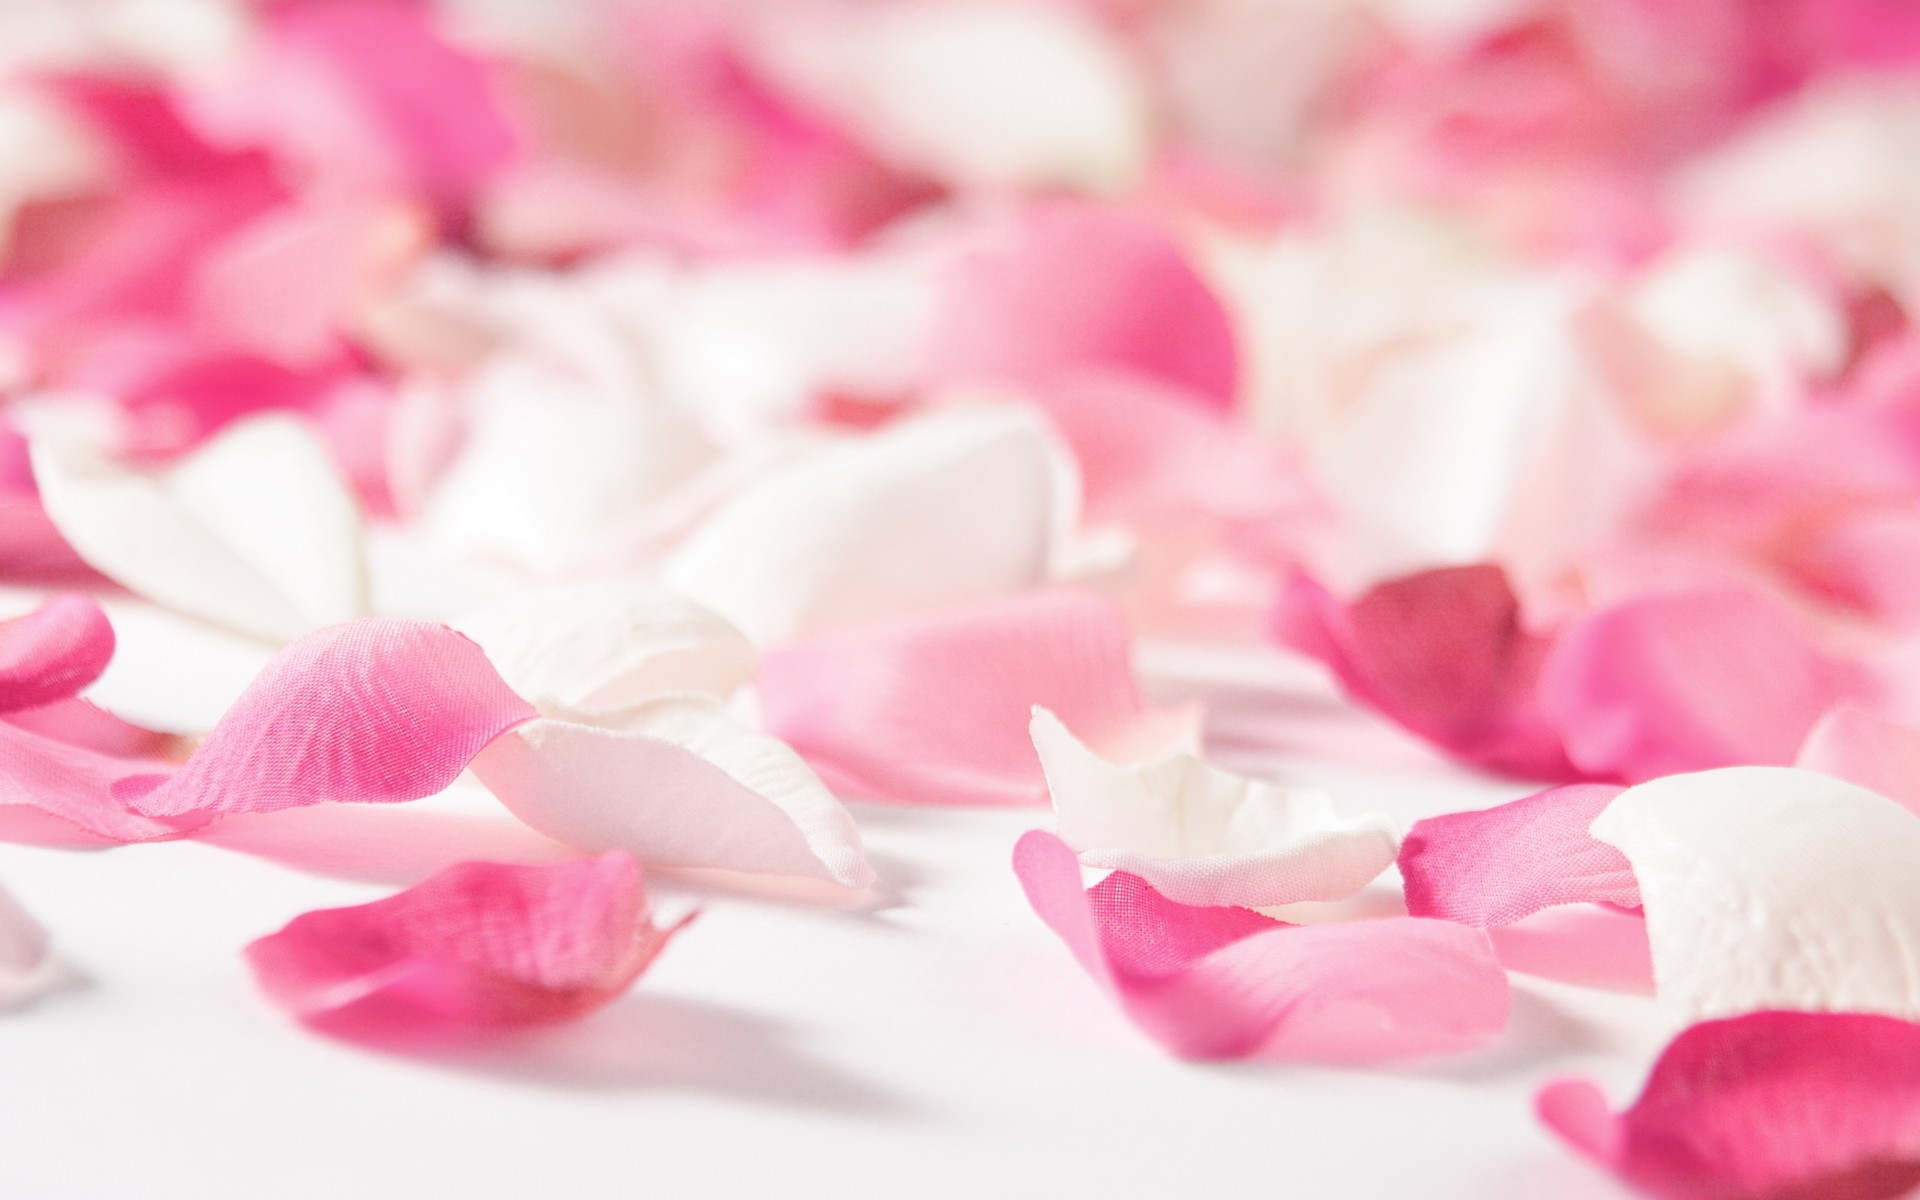 1920x1200 Flower Petals wallpaper